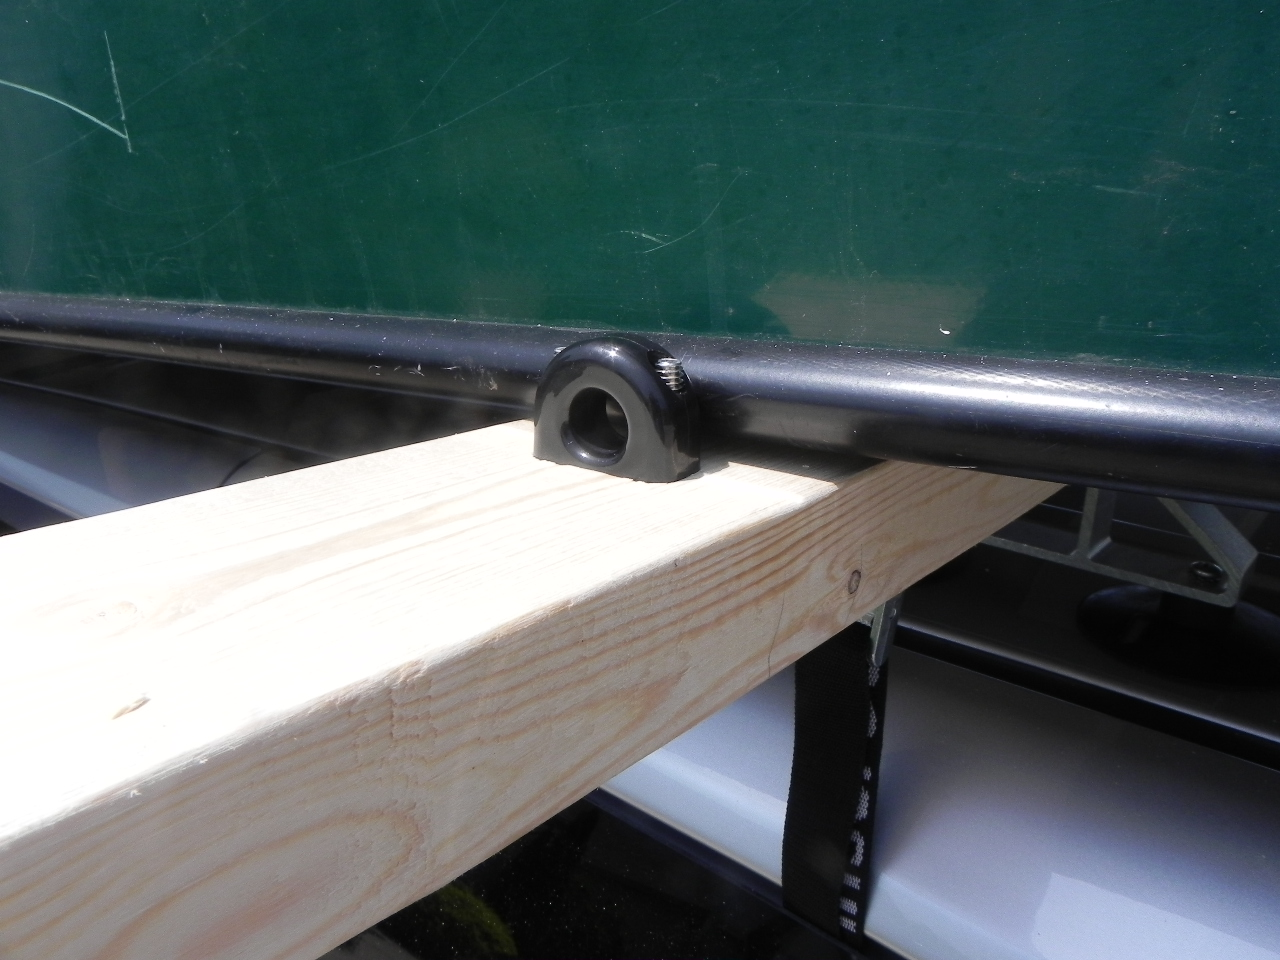 Canoe rack Rubber bumpers are installed